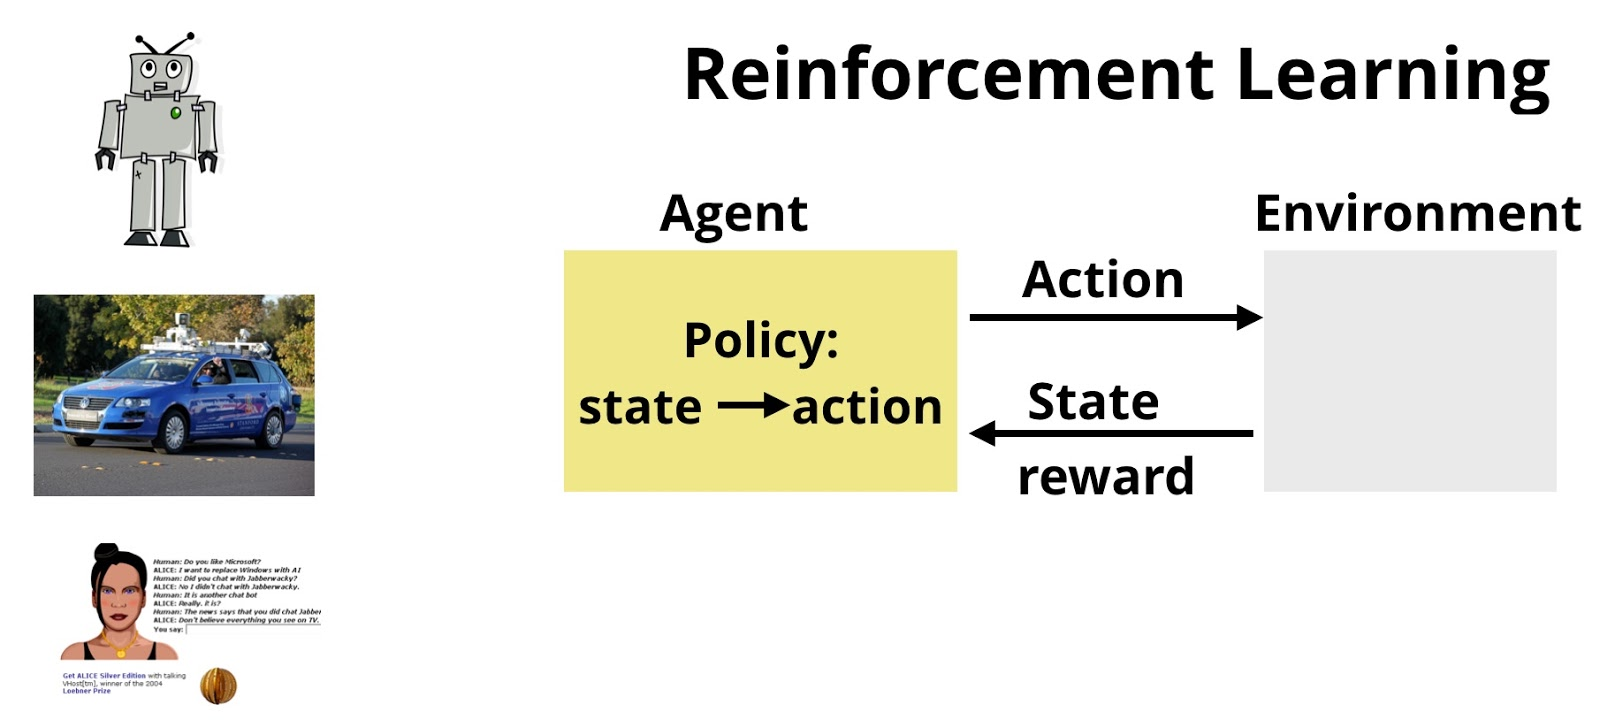 Reinforcement learning involves learning mappings of measurements and observations into actions